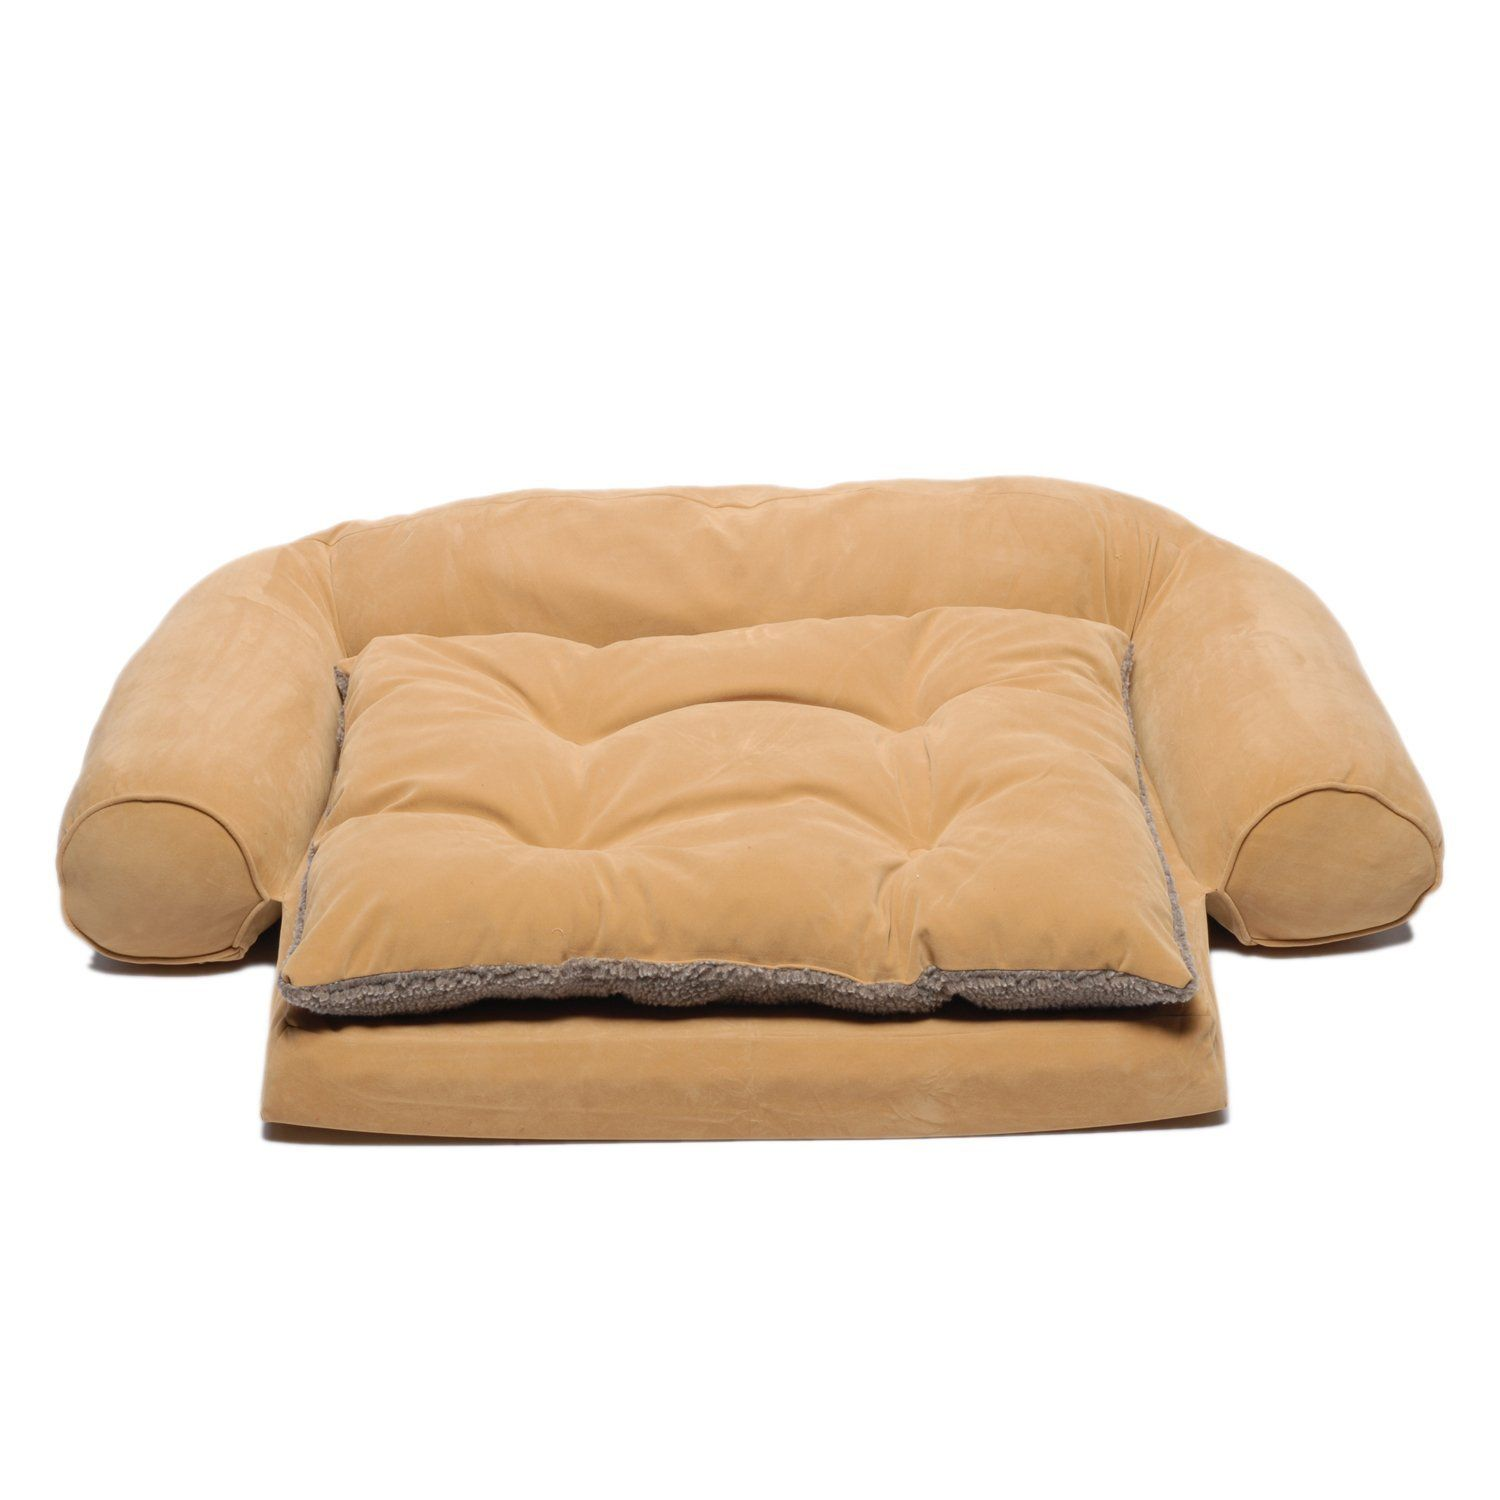 Dog Bed That Looks Like A Couch Orthopedic Sleeper Couch Dog Bed By Comfort Couch